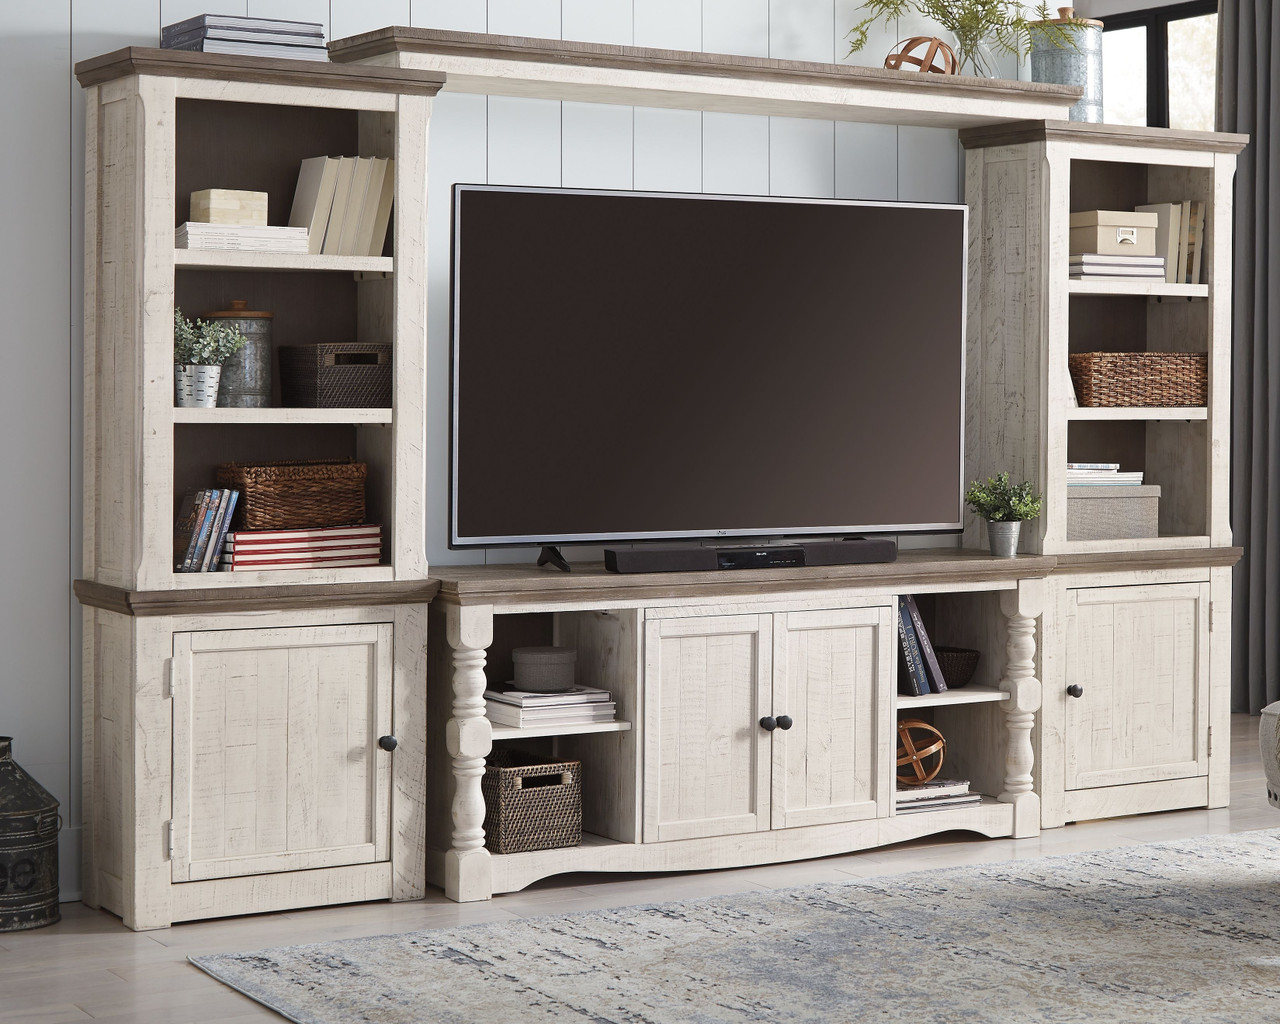 The Havalance Two-tone Entertainment Center available at